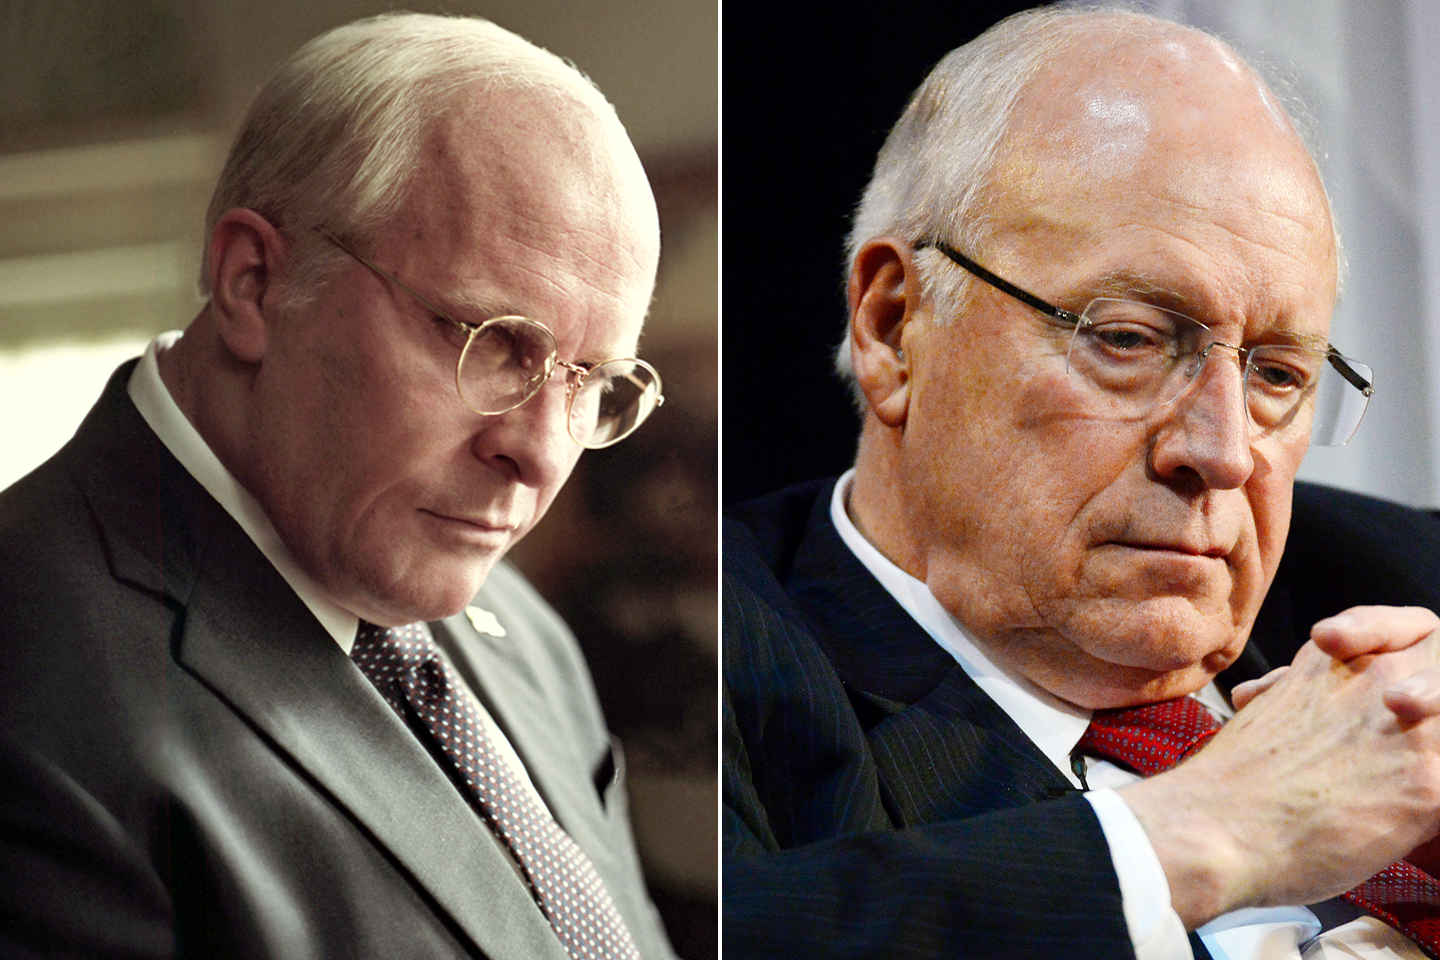 l-Bale-Cheney-Portrayal.png